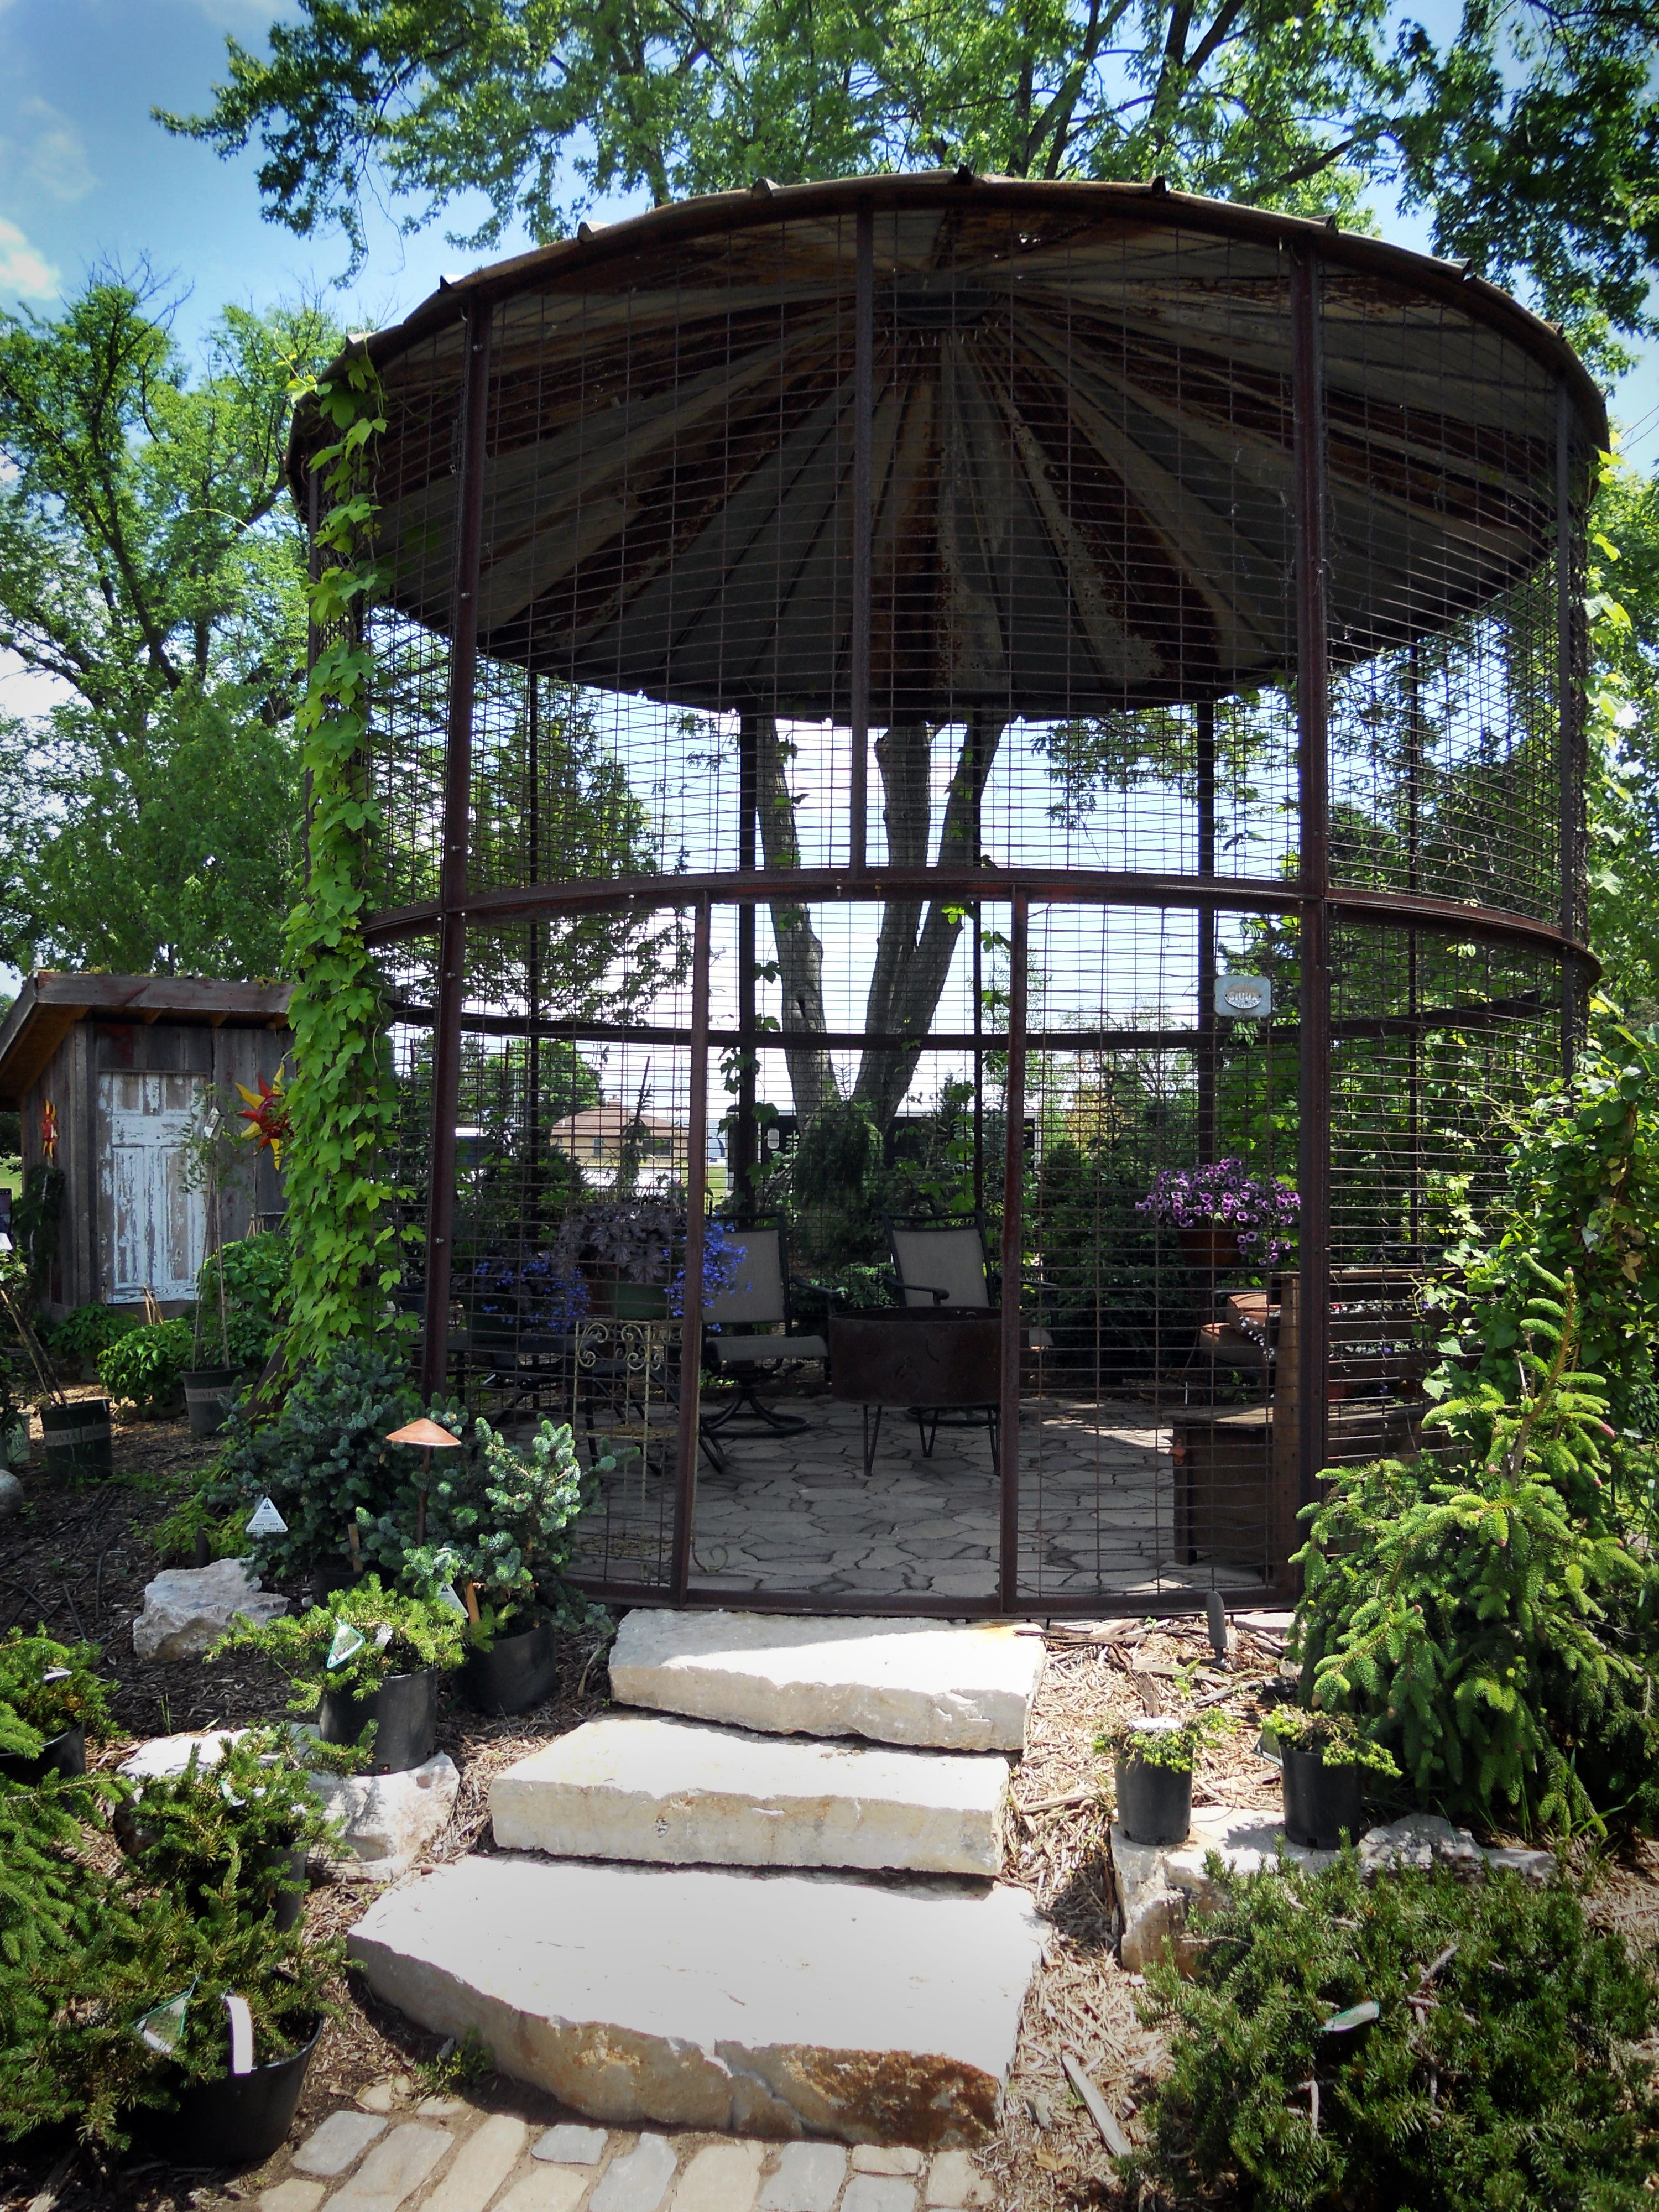 Wonderful Gazebo Made From An Old Corn Silo (at Down To Earth Garden Center  In Eau Claire, WI).